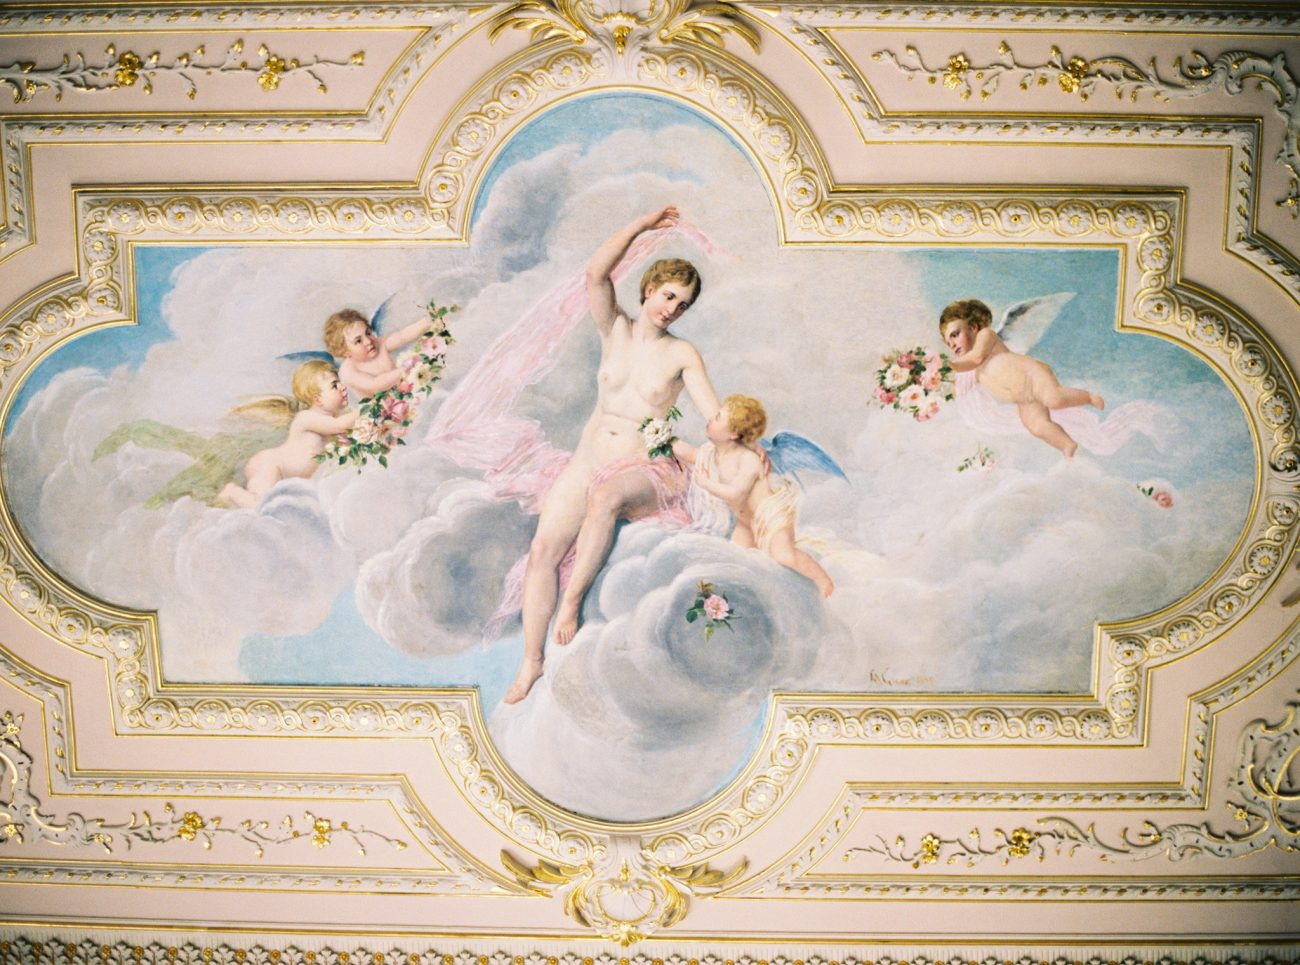 Portuguese palace interior painted ceiling